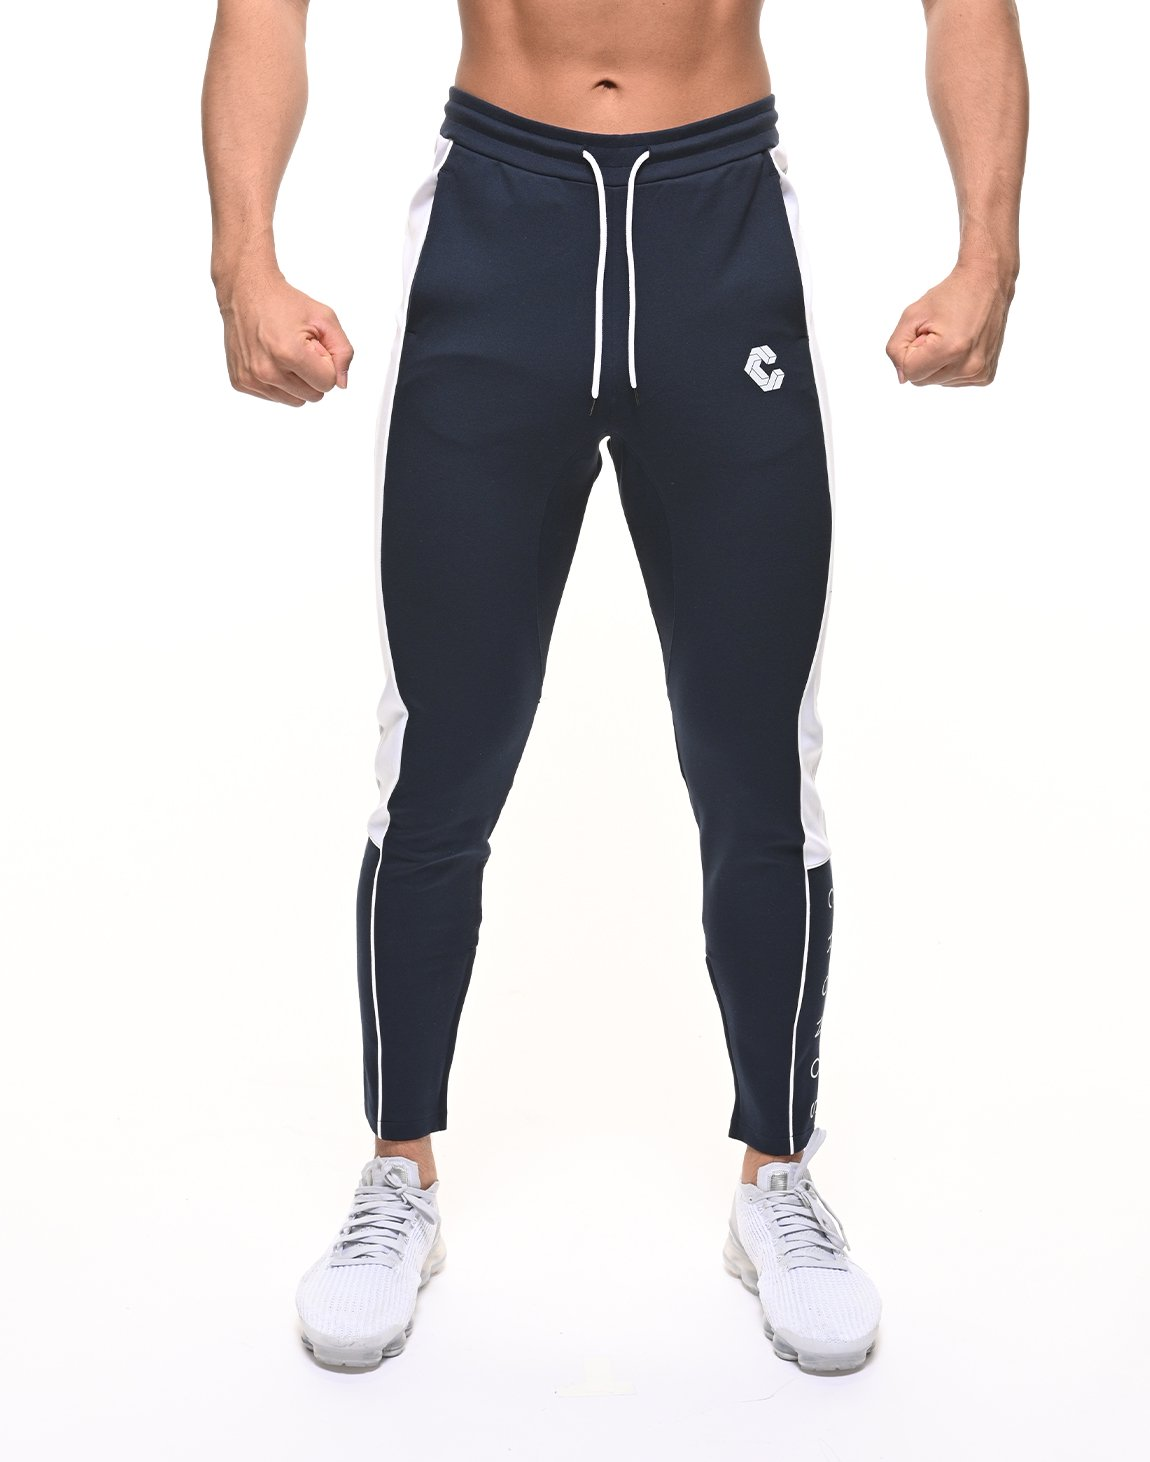 <img class='new_mark_img1' src='https://img.shop-pro.jp/img/new/icons55.gif' style='border:none;display:inline;margin:0px;padding:0px;width:auto;' />CRONOS THICK LINE LOGO PANTS【NAVY】